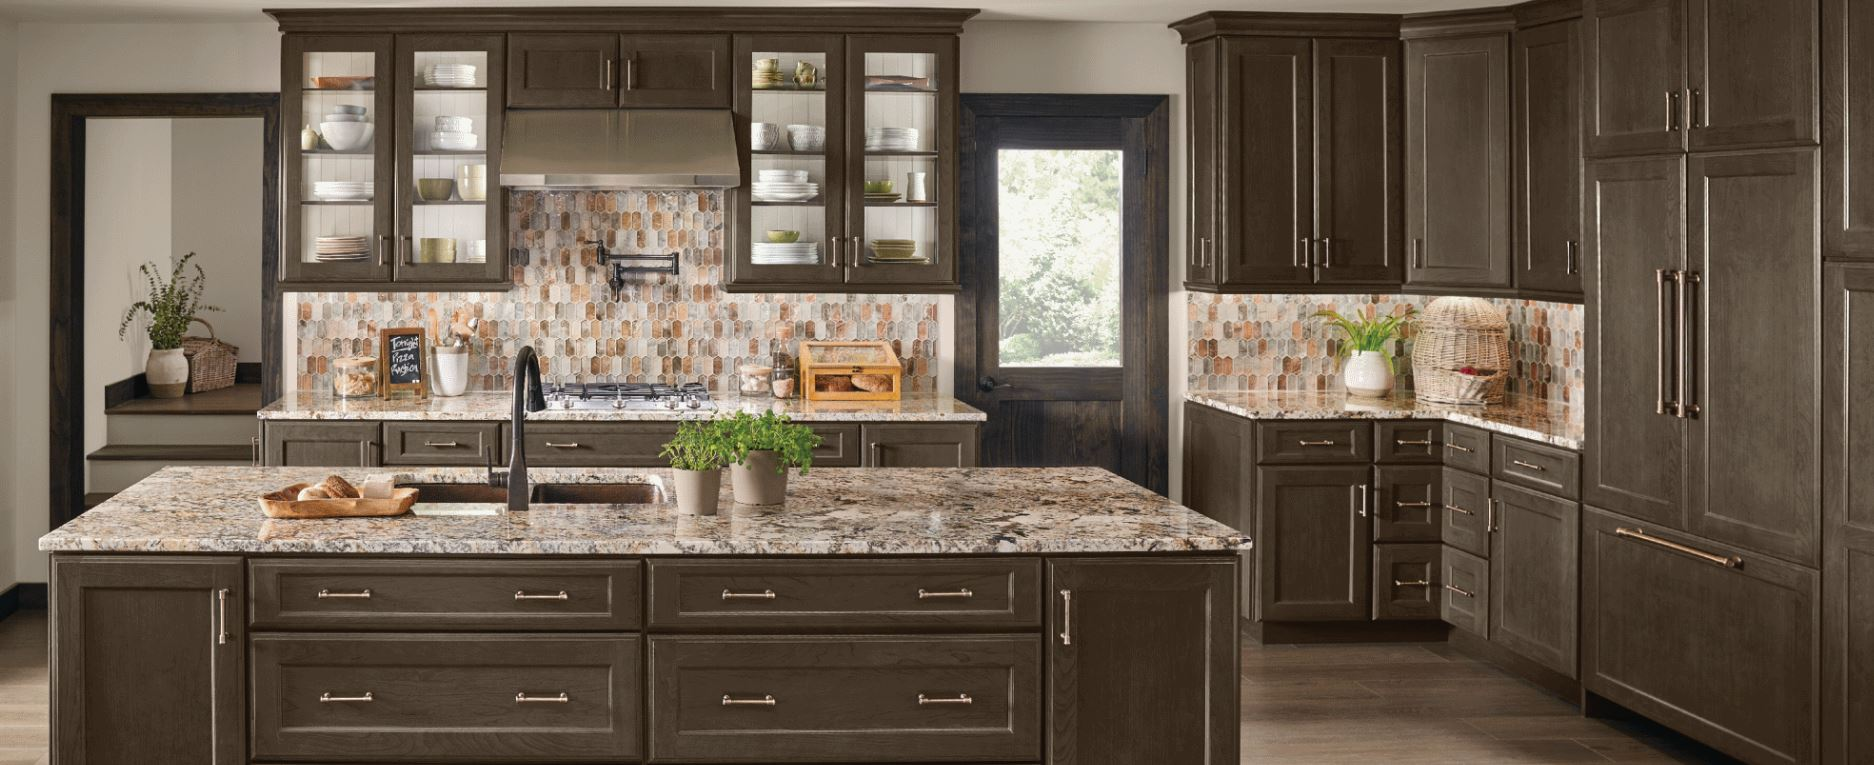 Kitchen Cabinet Displays For Sale Ohio